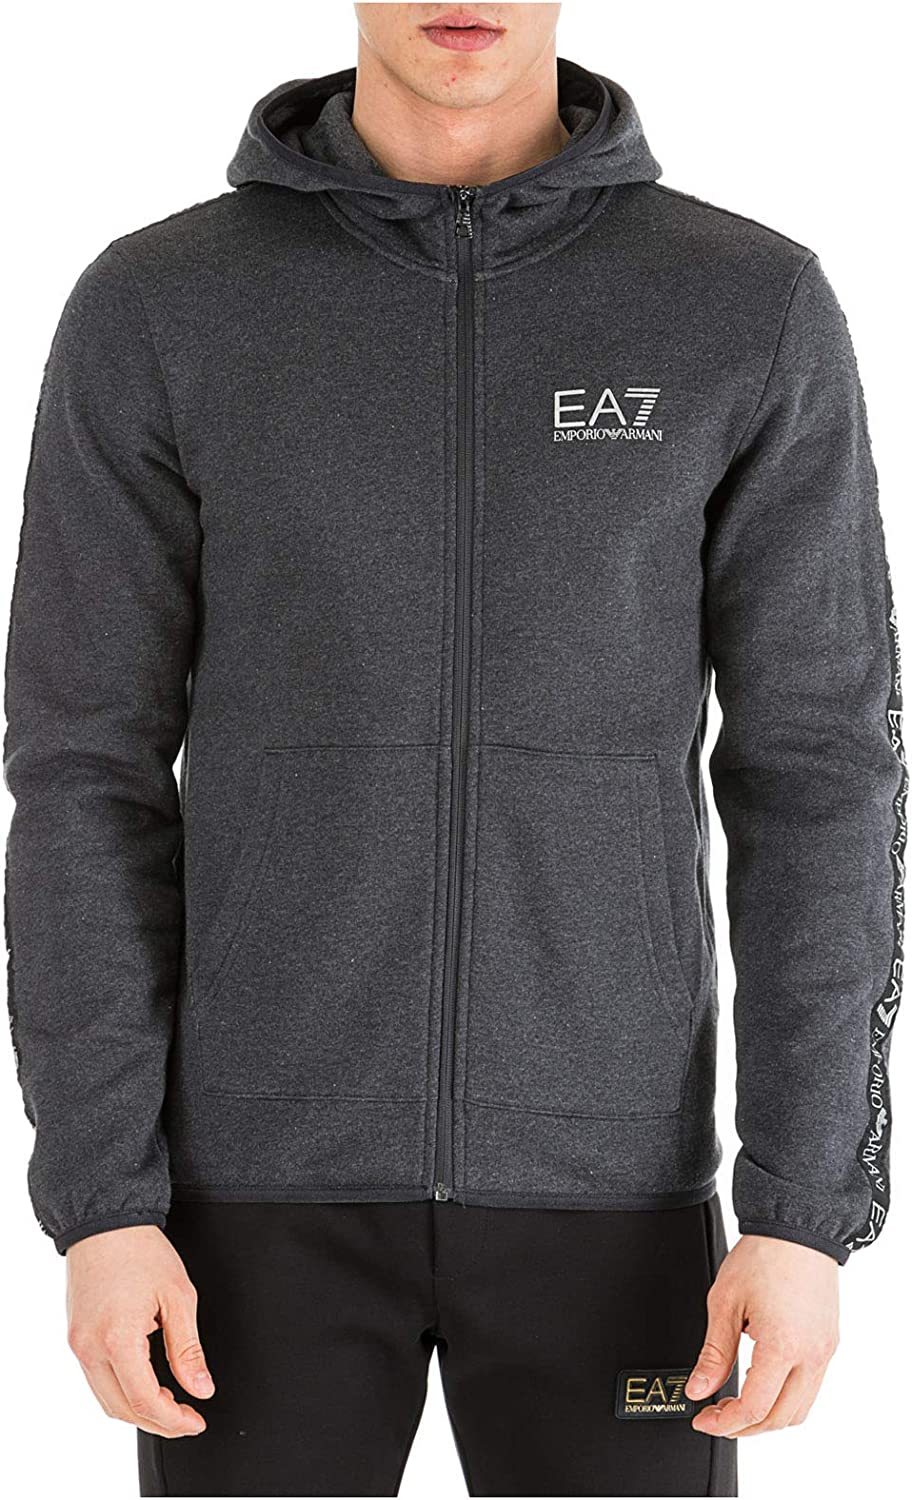 EMPORIO ARMANI EA7 Men Zip-up Sweatshirt Carbon Melange